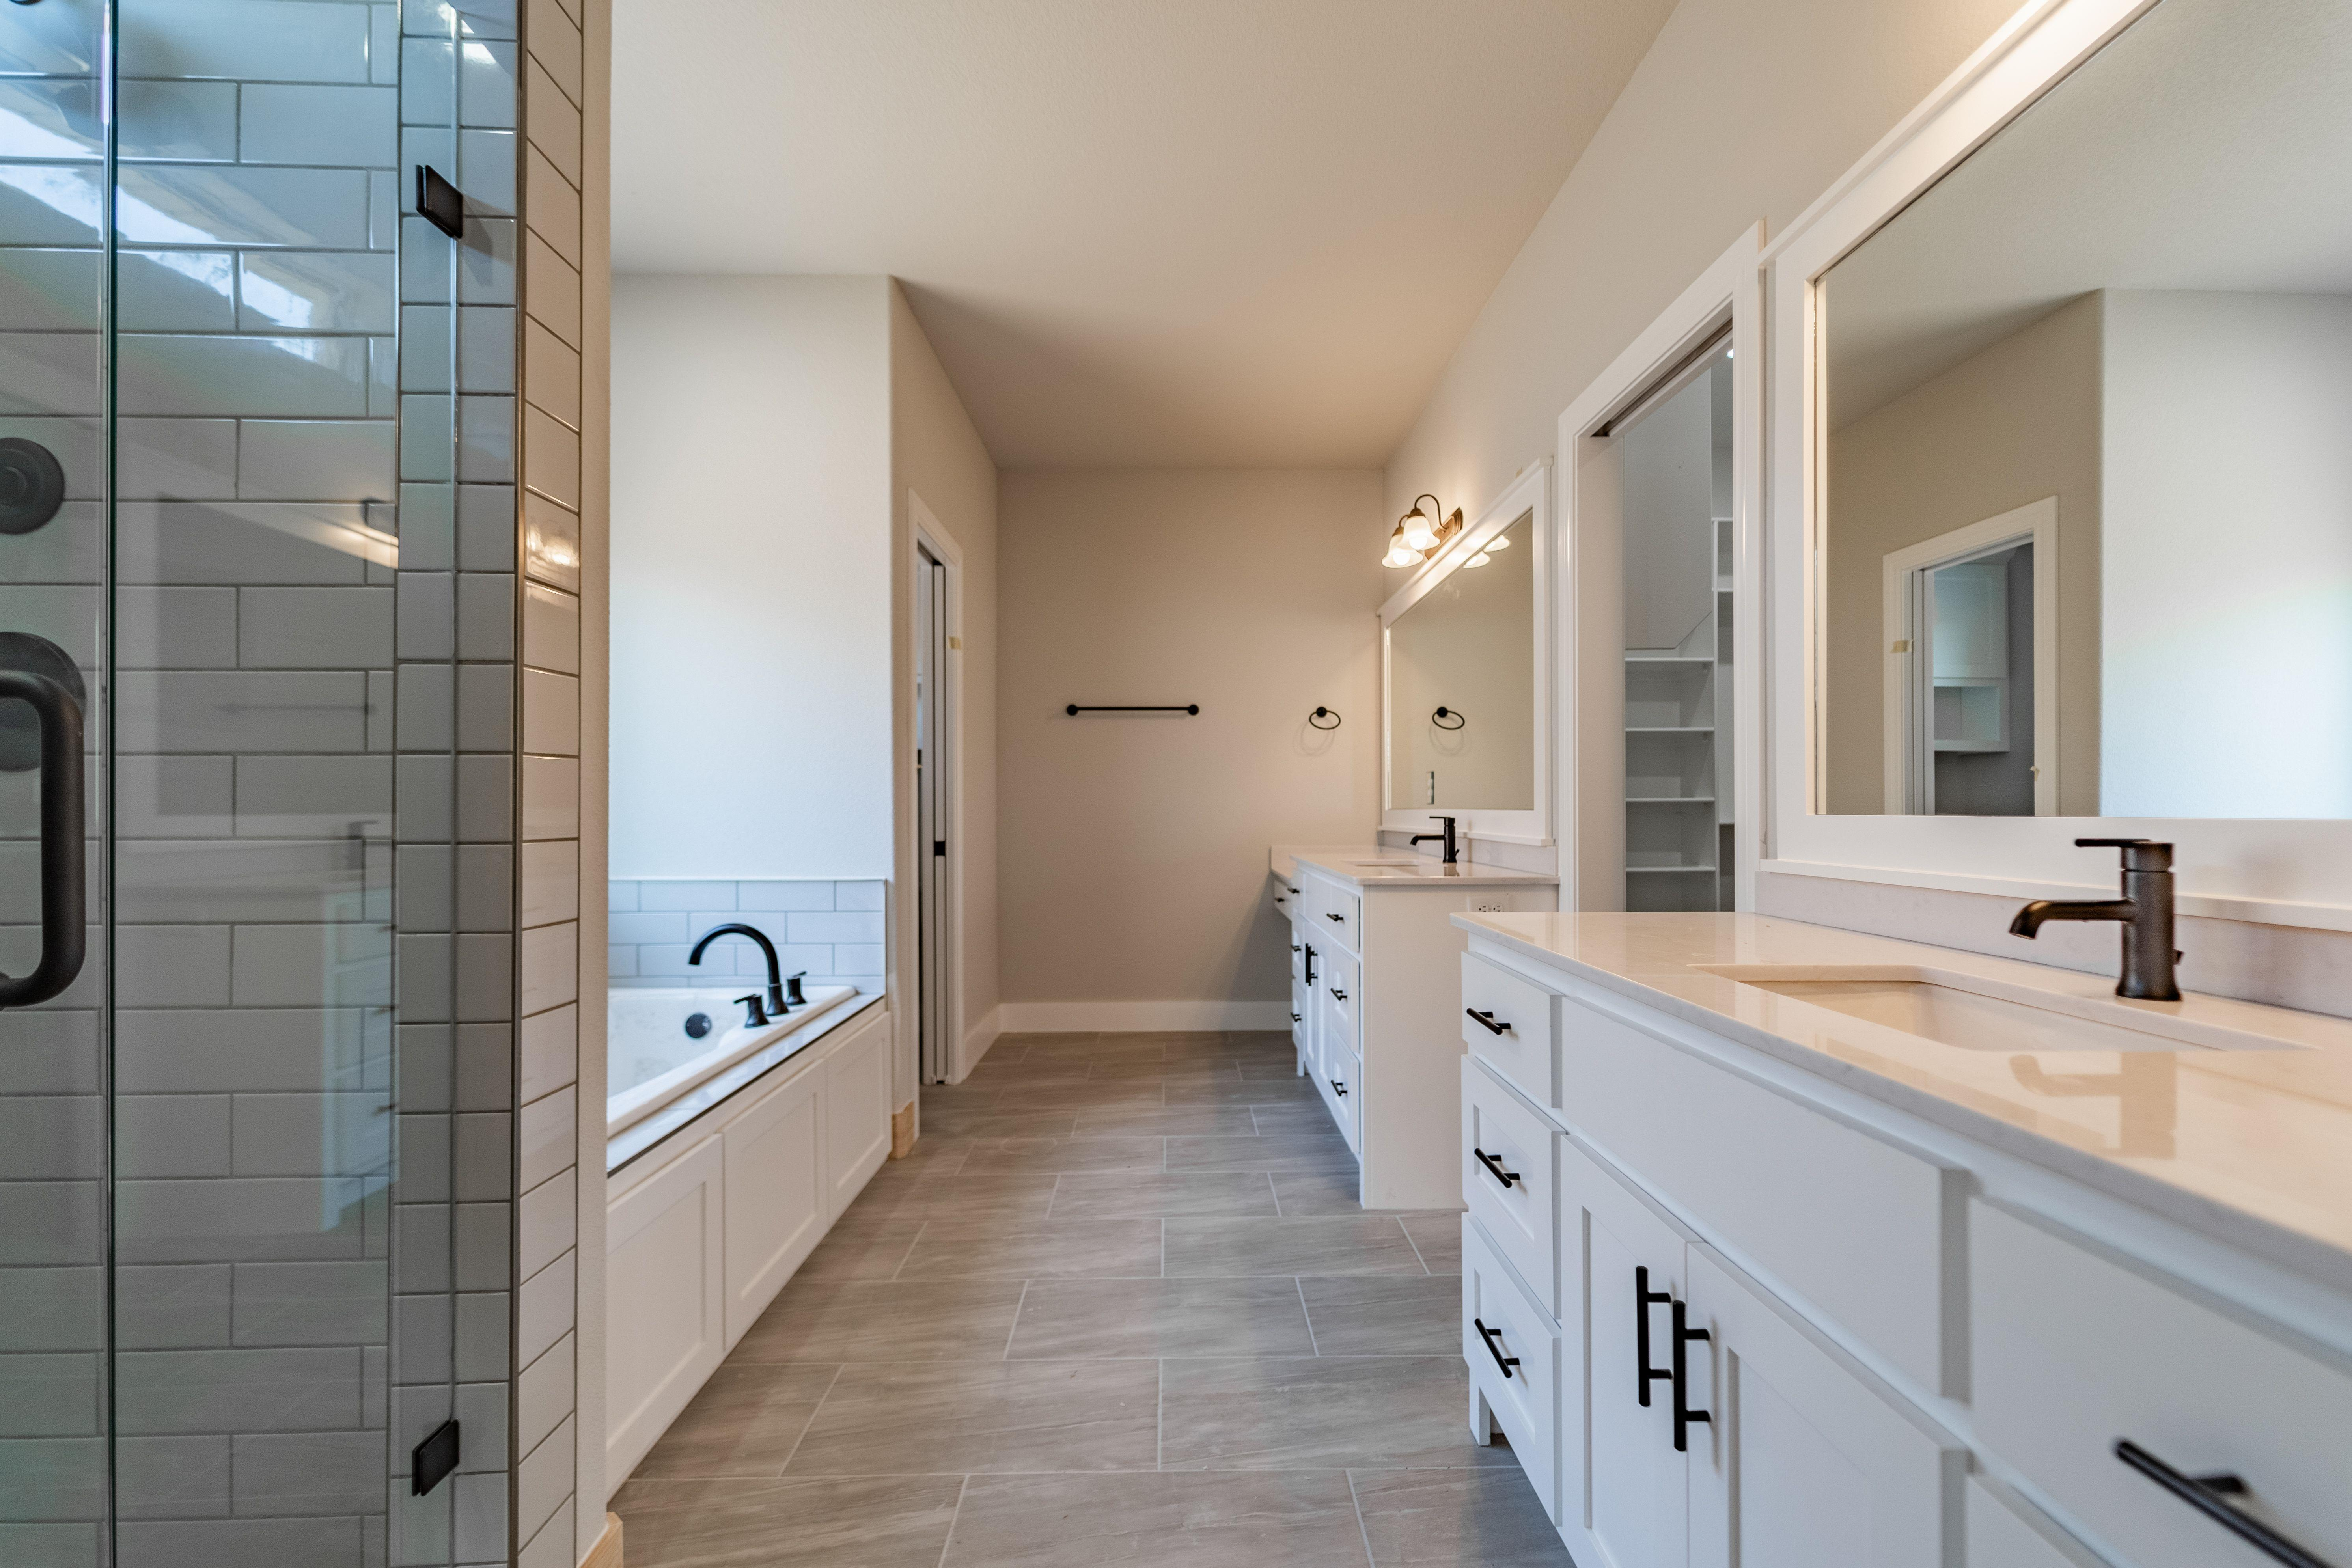 Bathroom featured in the Diamond 2901 By Riverwood Homes - Arkansas in Fayetteville, AR